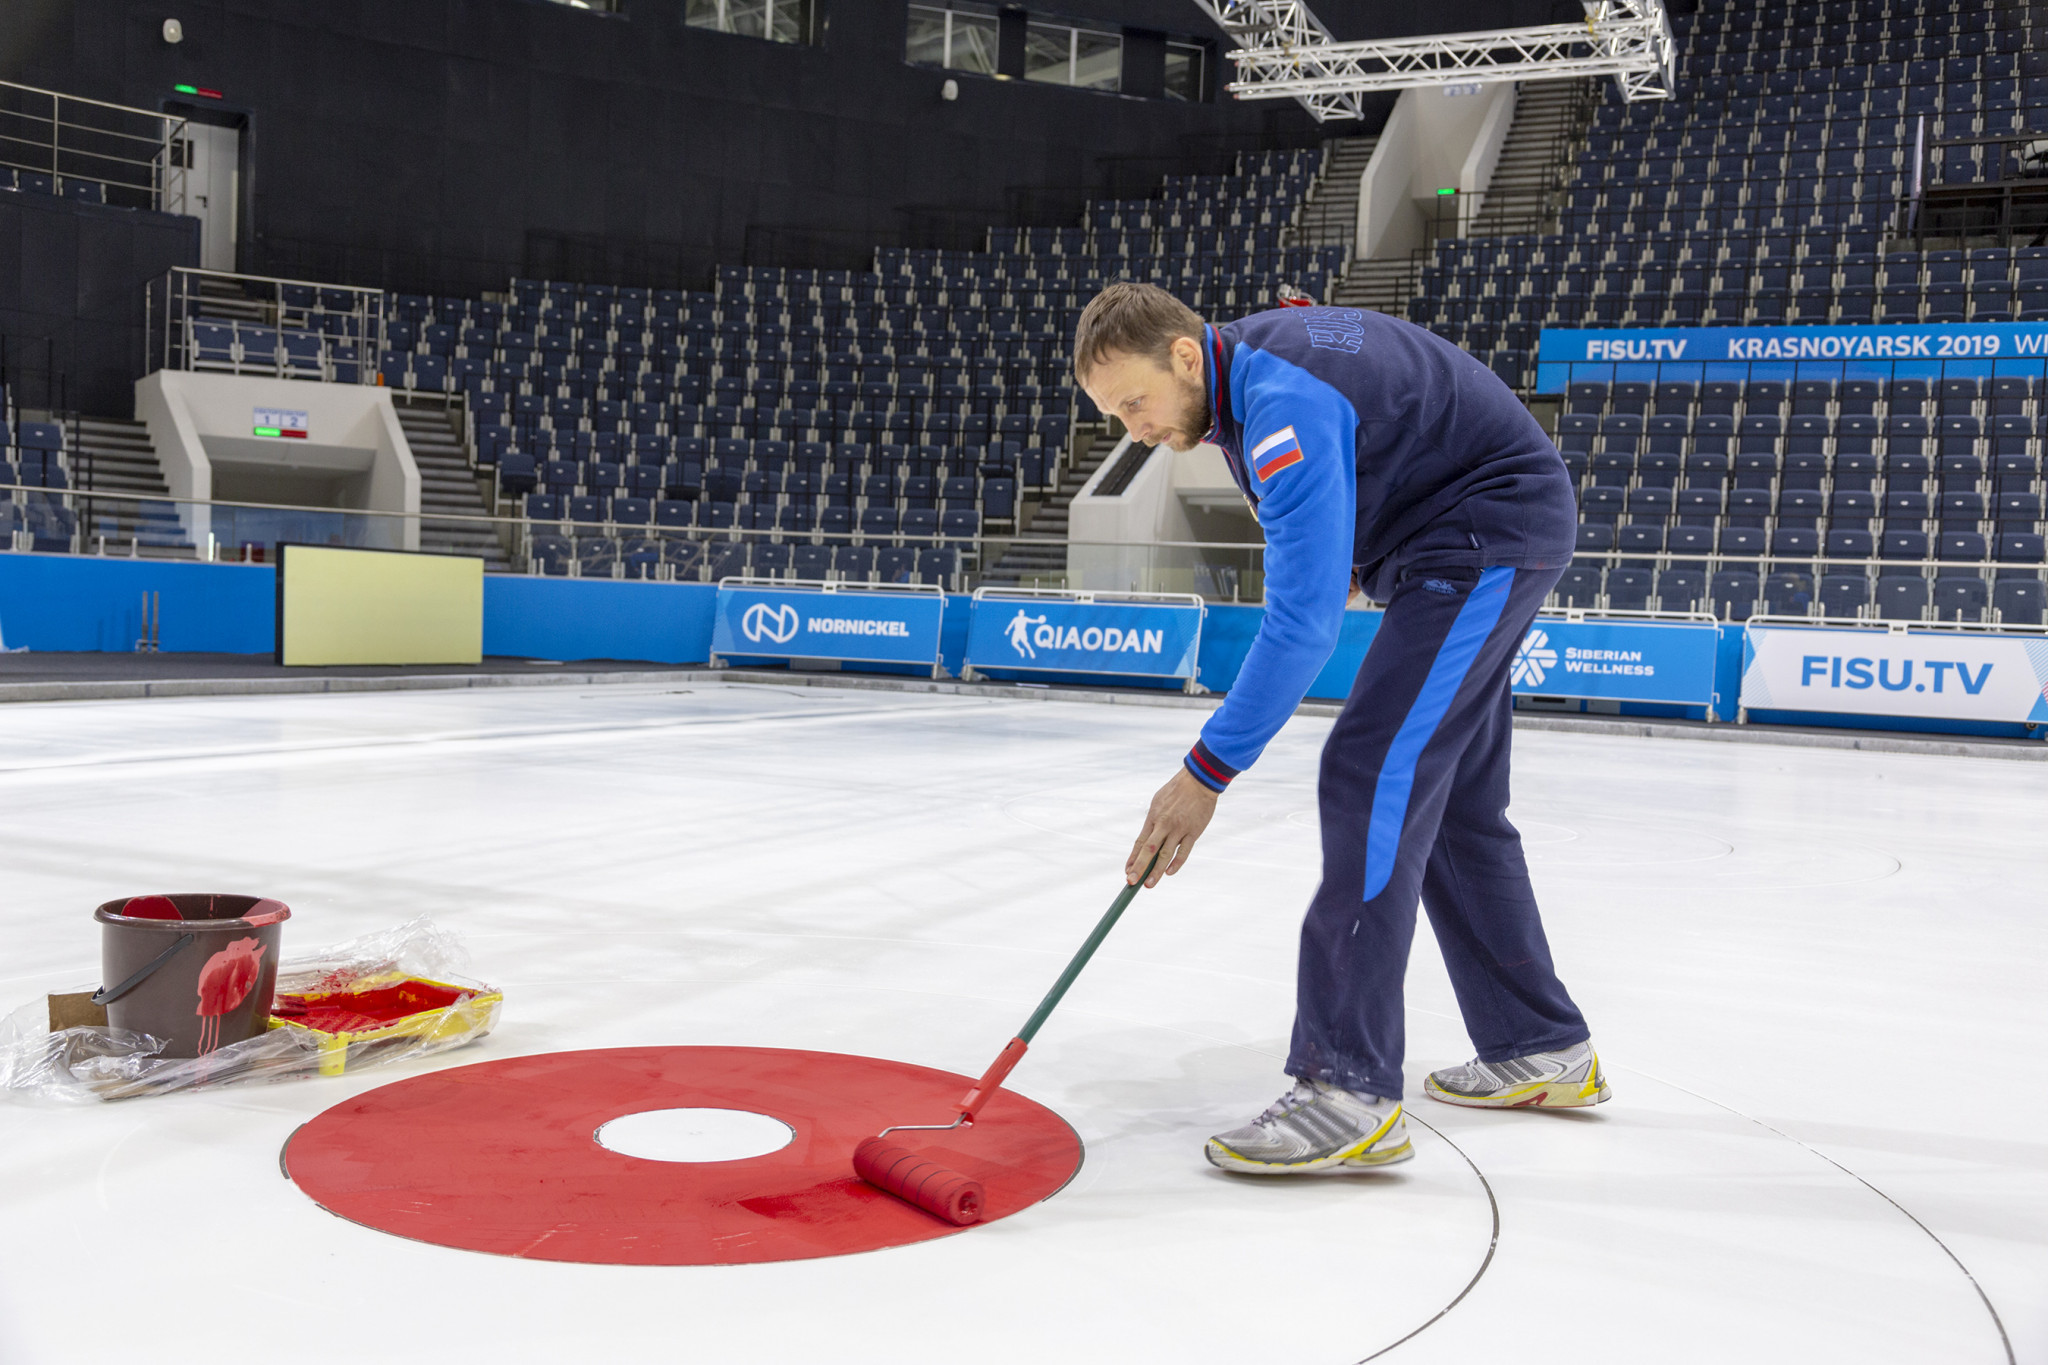 The final touches have been applied to the curling surface for the event ©Krasnoyarsk 2019